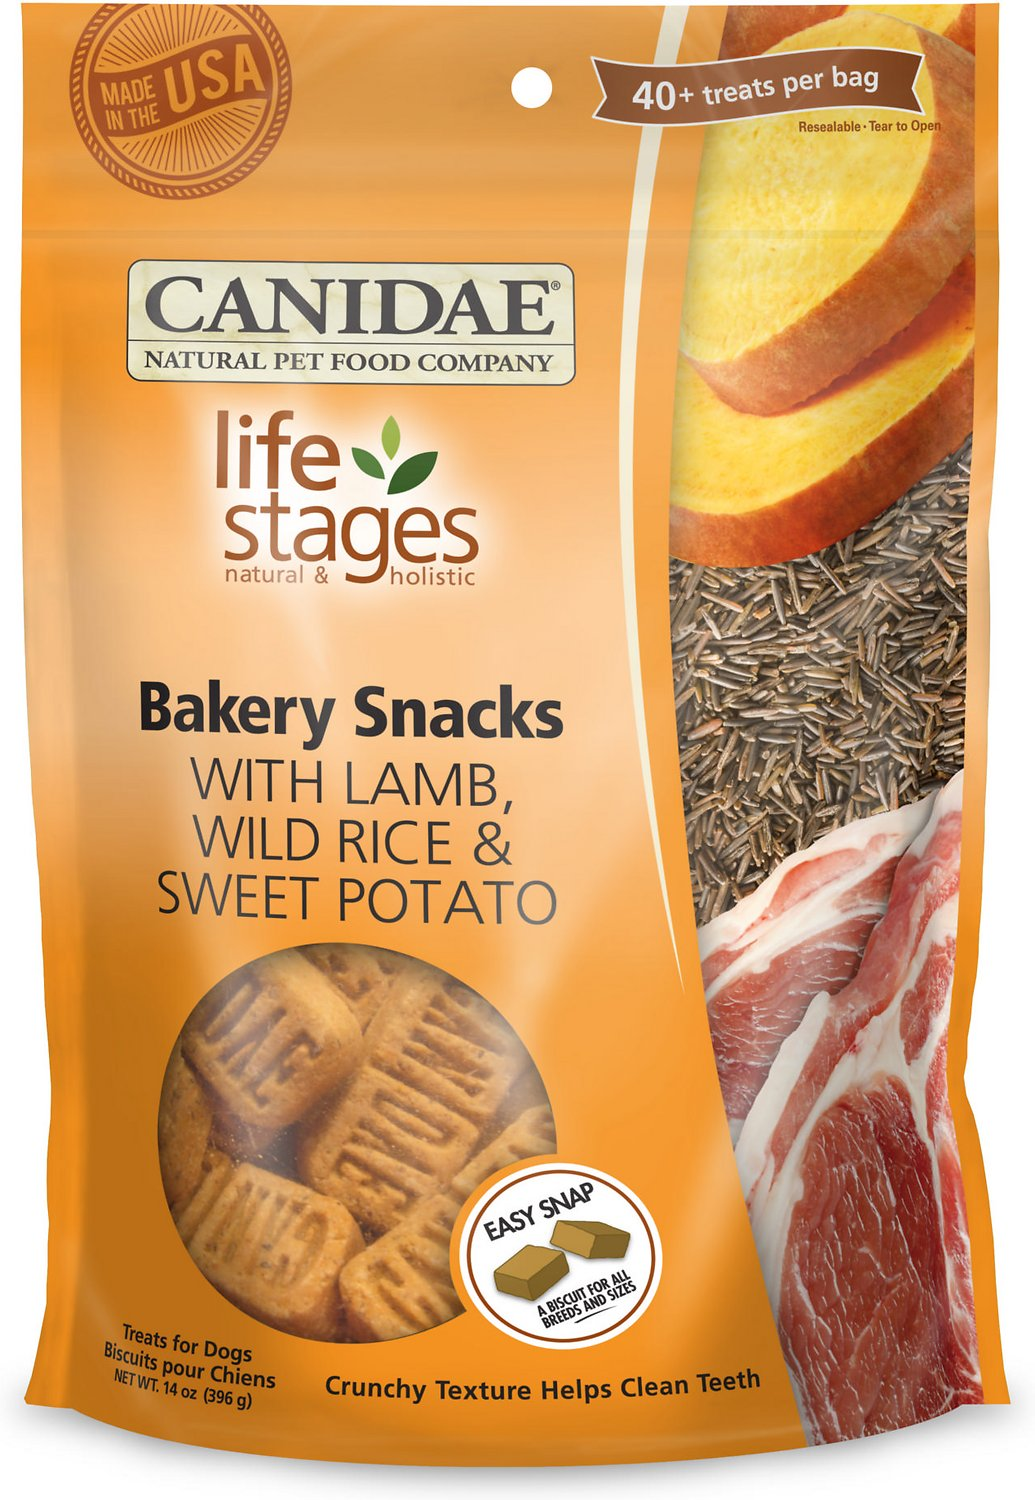 Canidae Life Stages Bakery Snacks with Lamb, Wild Rice & Sweet Potato Dog Treats, 14-oz bag (Weights: 14.08 ounces) Image